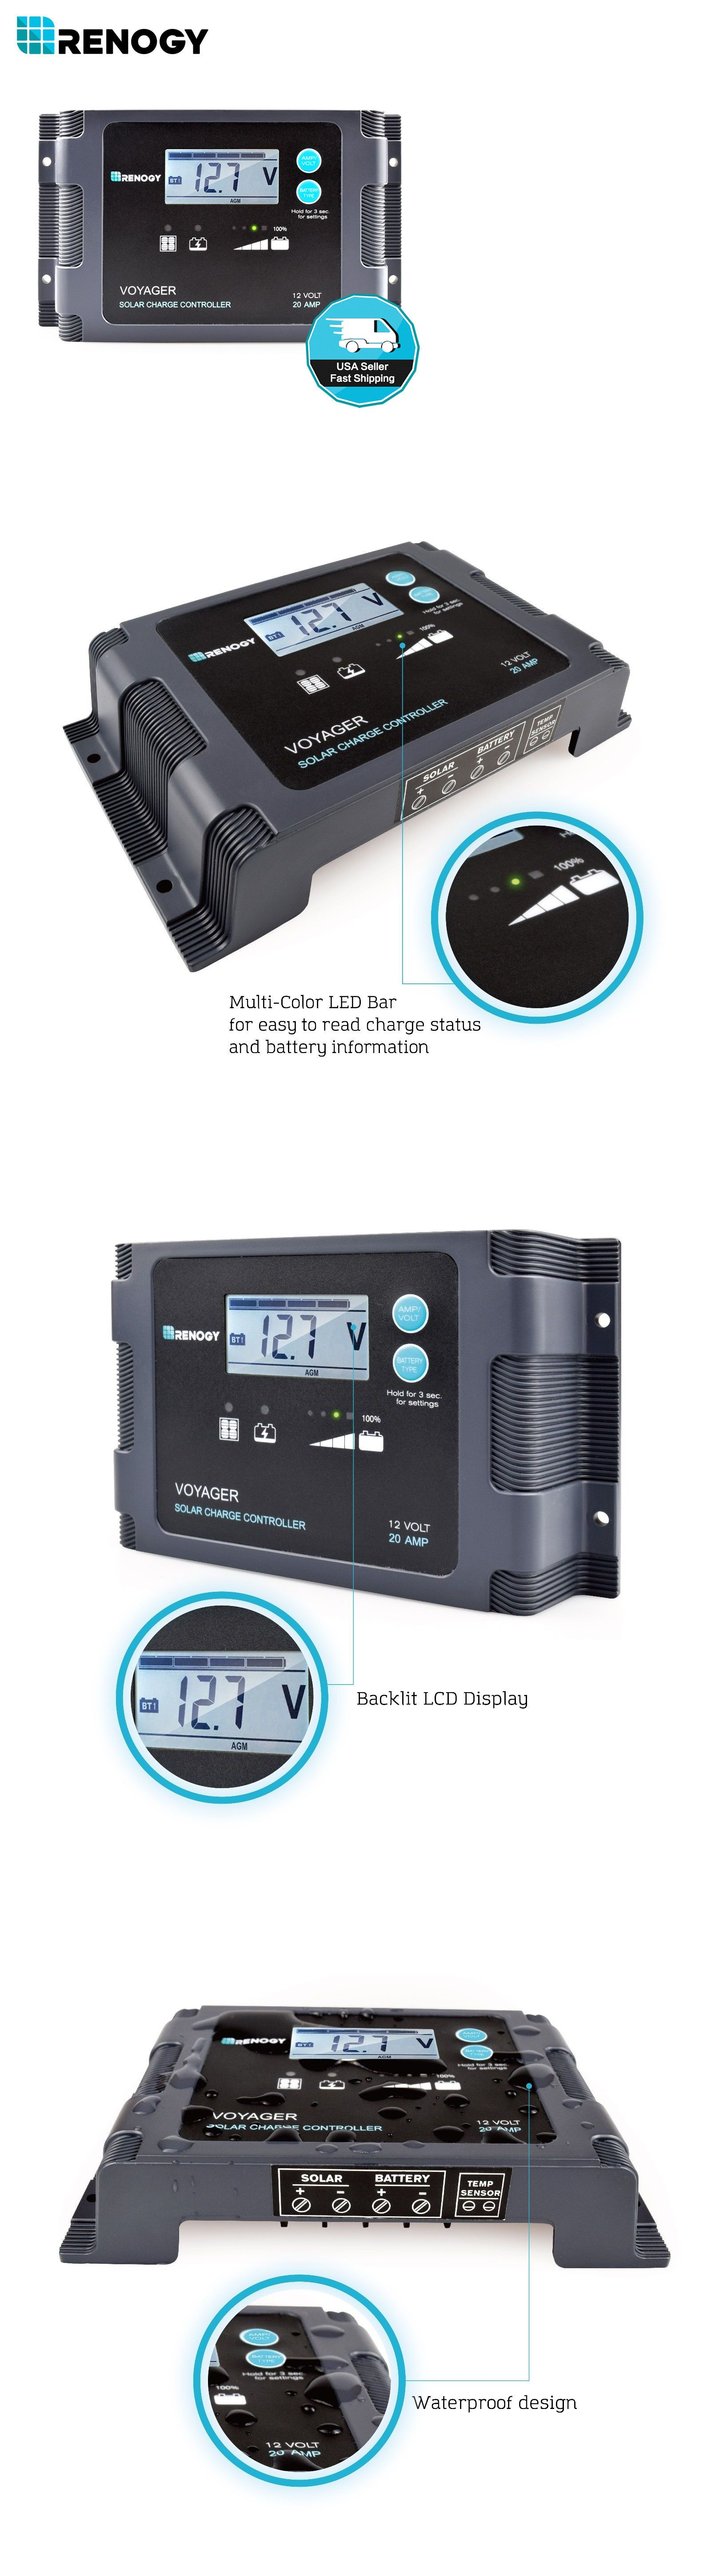 Chargers And Inverters 41980 Renogy Voyager 20a Pwm Waterproof Solar Charge Controller 12v Battery Regulator Buy It Now Only 53 Solar Module Solar Voyage